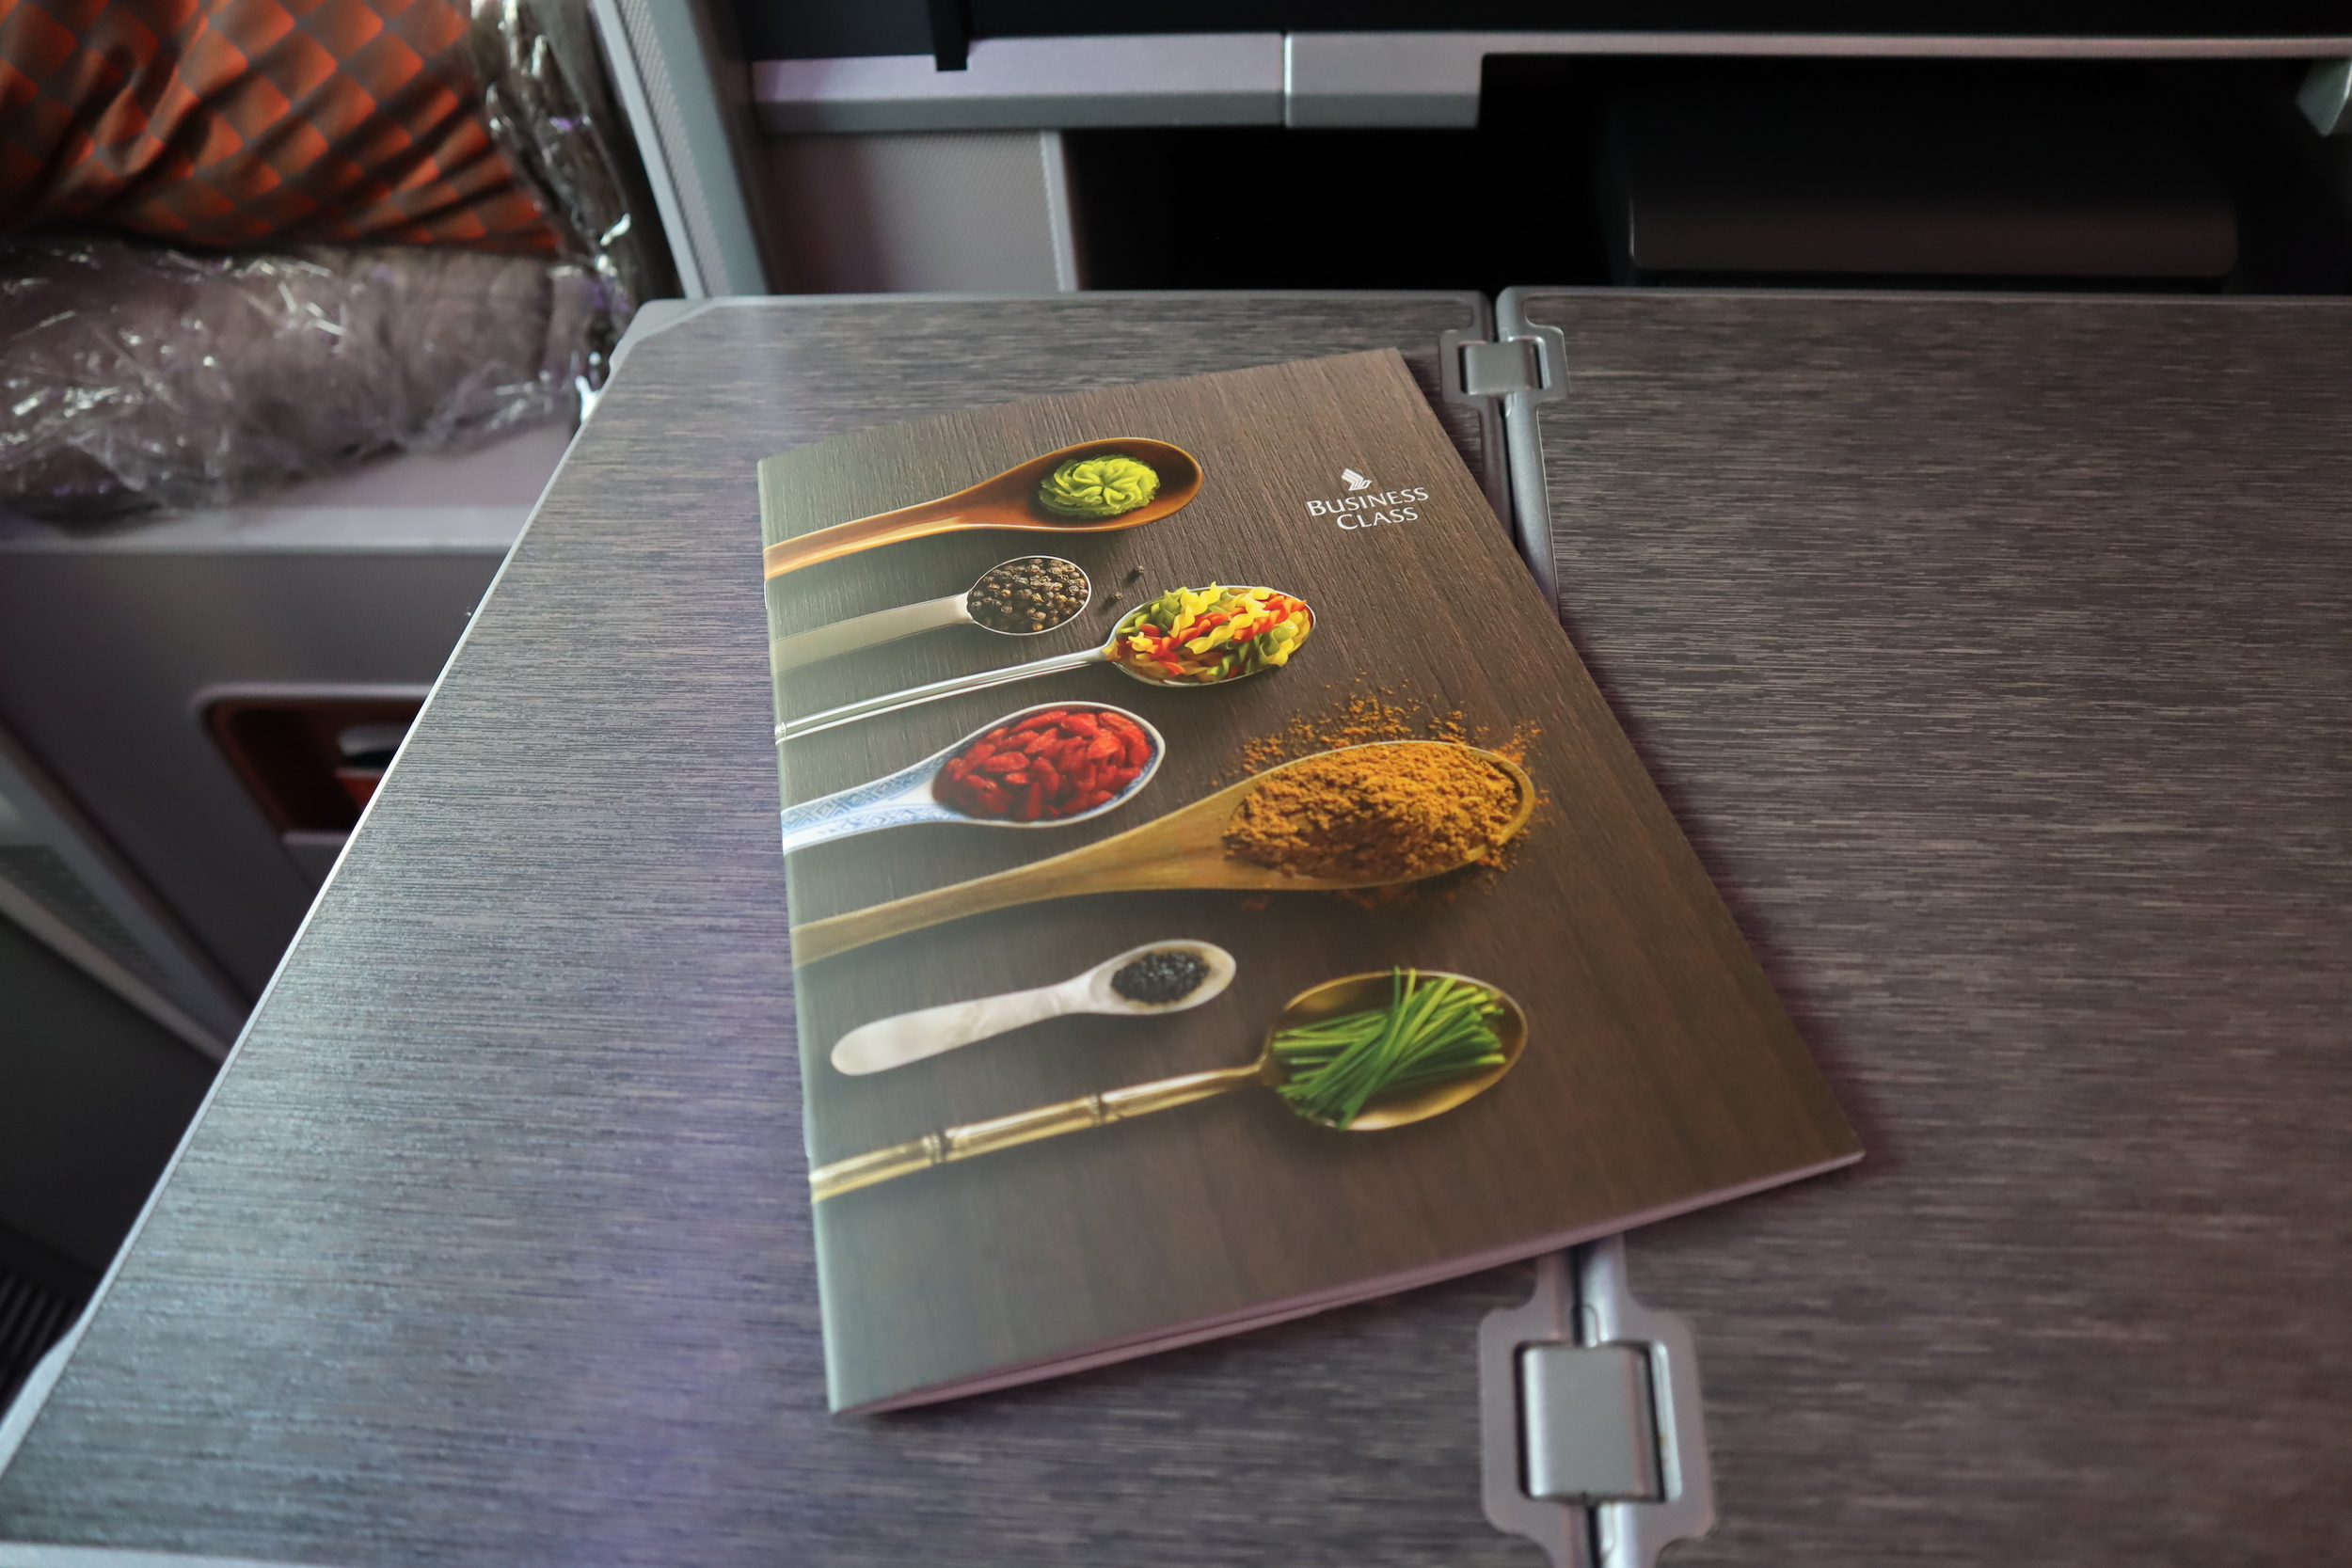 Singapore Airlines 787-10 business class – Menu